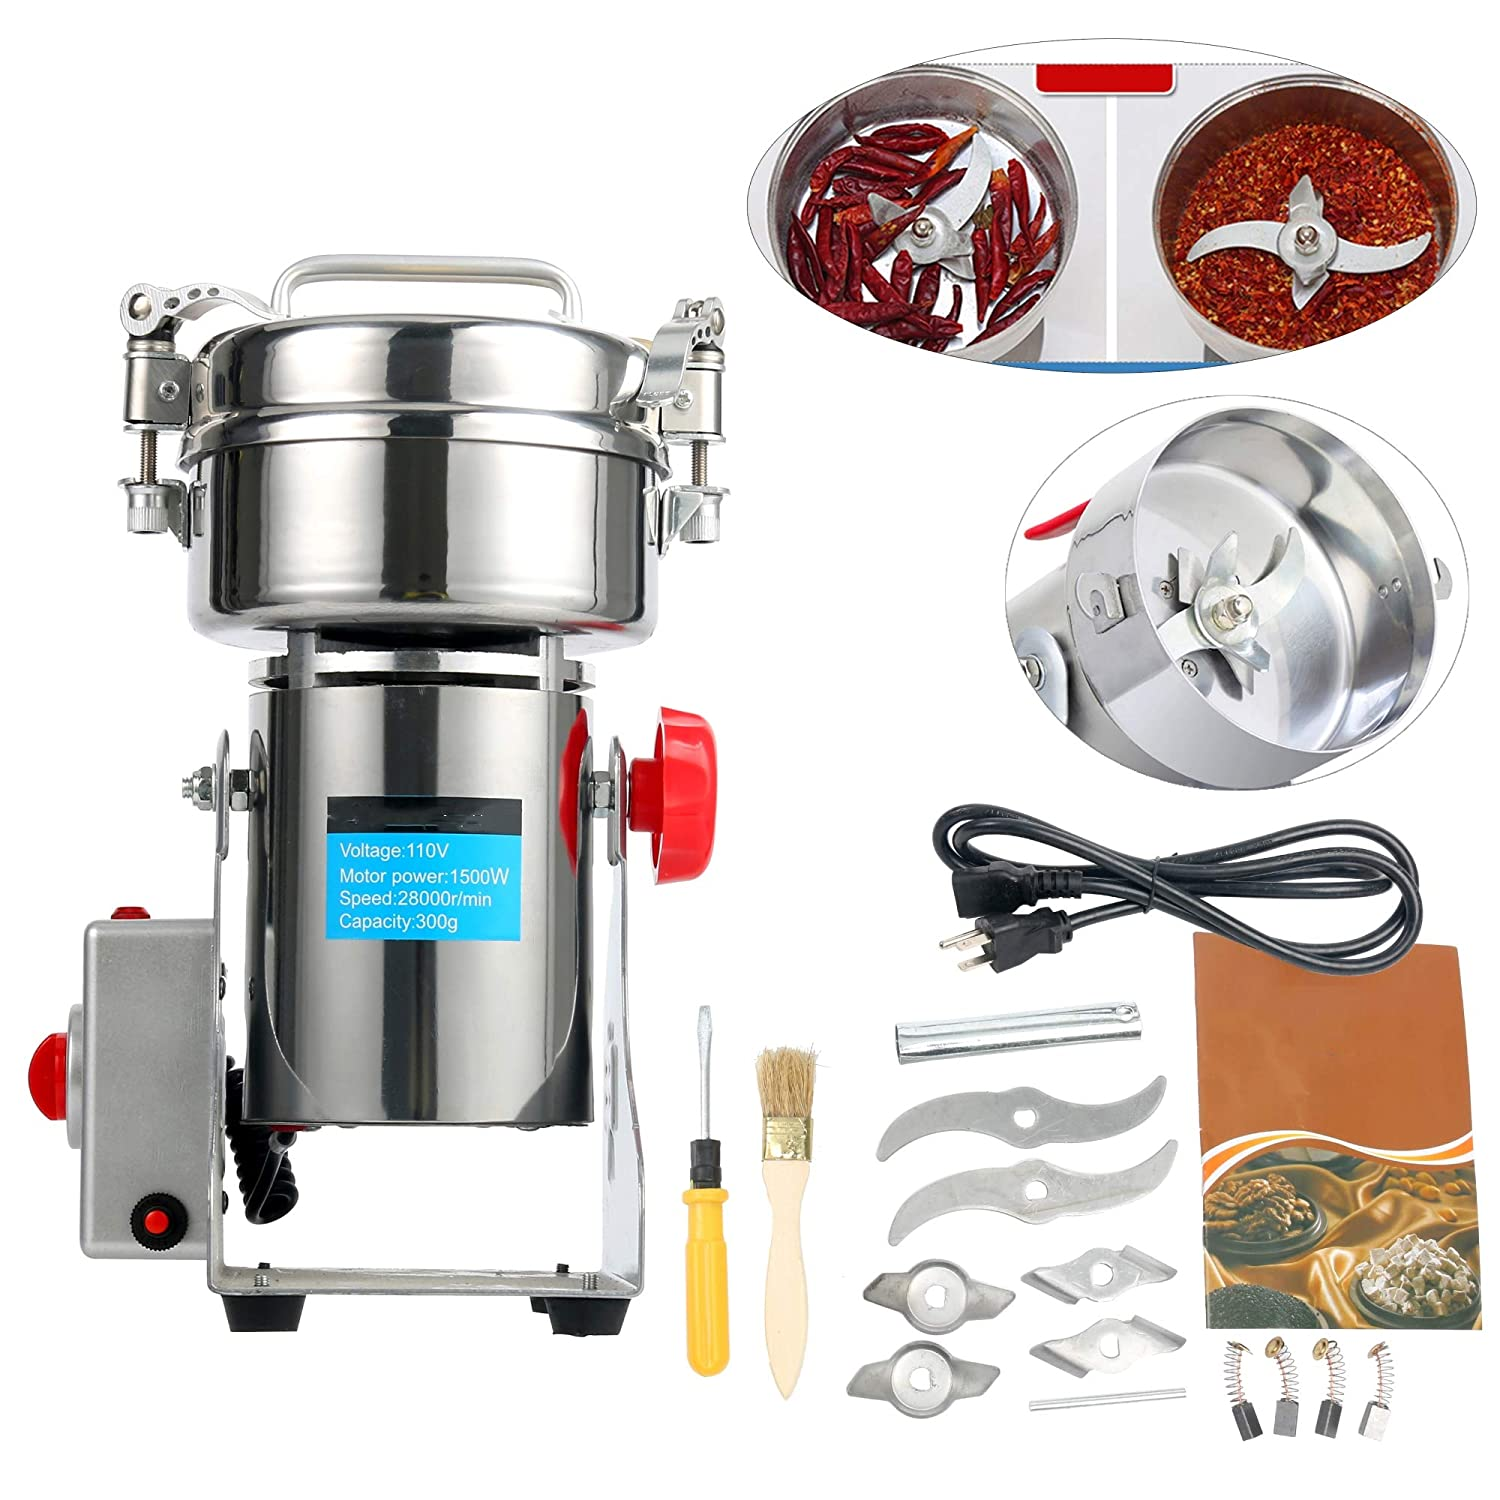 YaeTek 110V 300g Stainless Steel Electric High-Speed Grain Grinder Mill Family Medicial Powder Machine Commercial Cereals Grain Mill Herb Grinder,Pulverizer Gift for mom, Wife Shanghai Penghou Trading Ltd